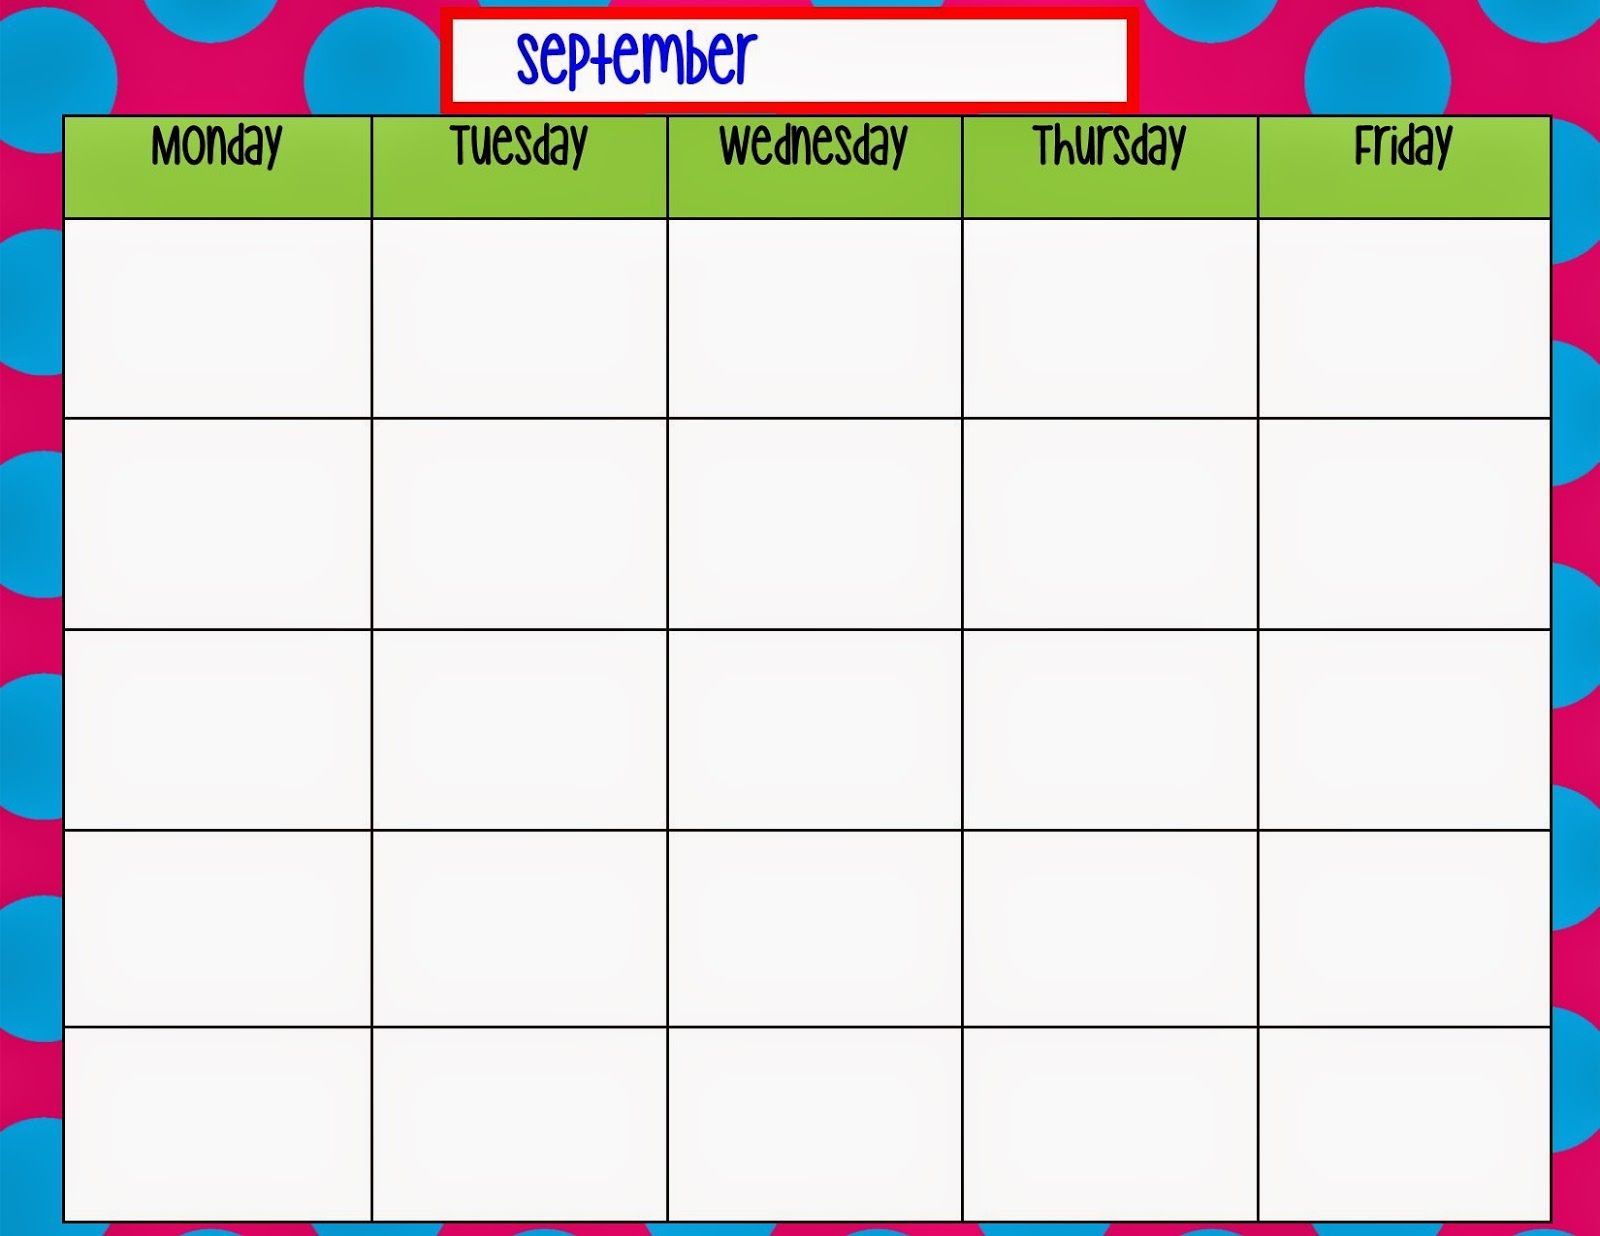 Monday Through Friday Calendar Template | Preschool | Weekly with regard to Template Monday Through Friday Calendar